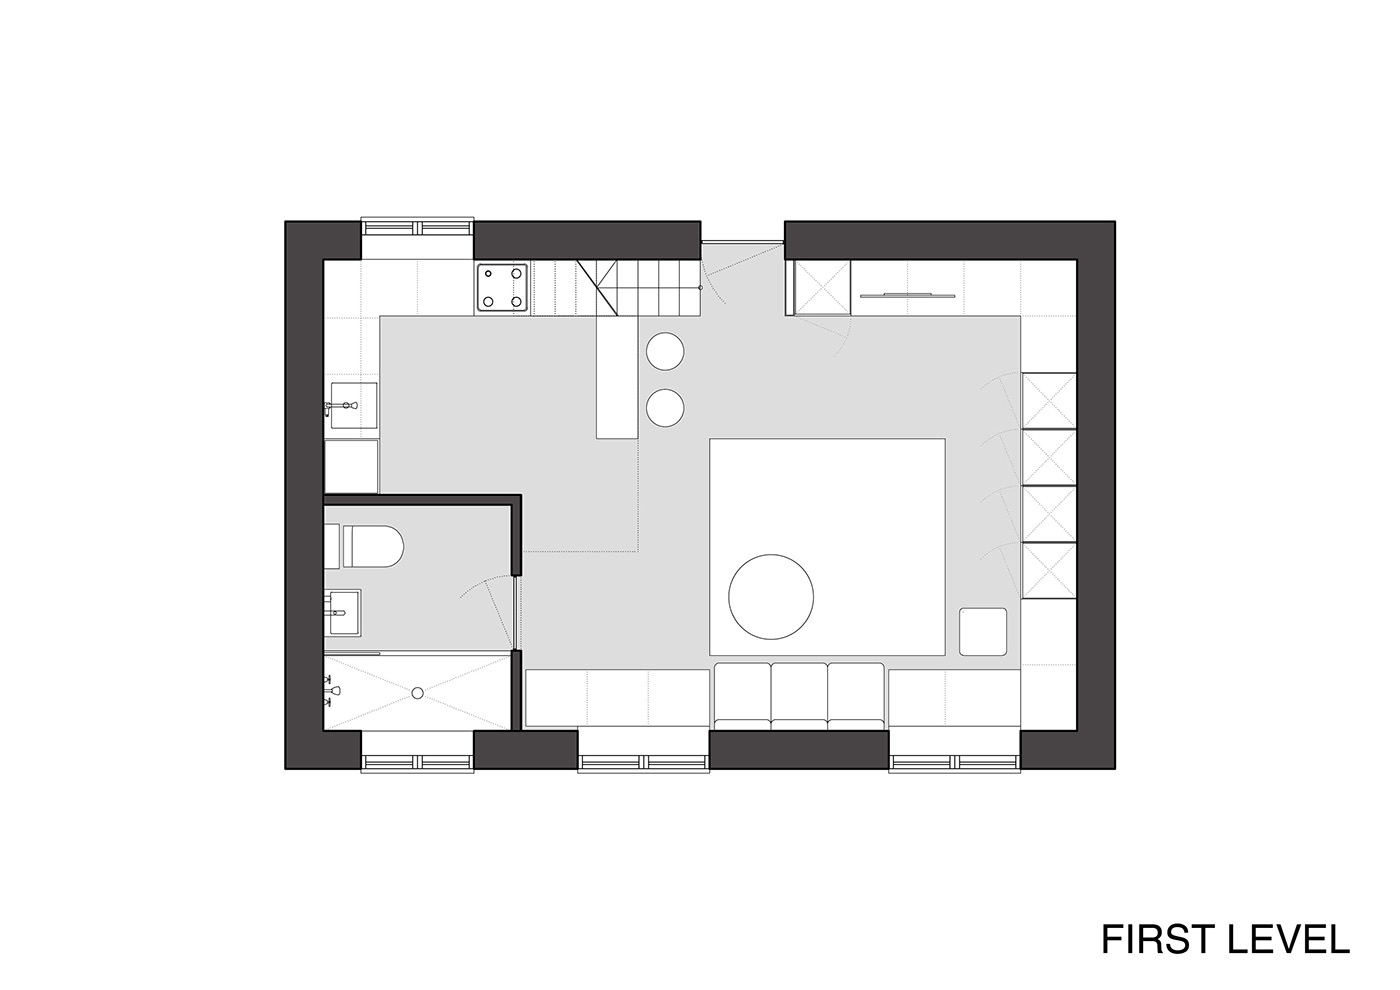 Loft Apartment Design Layout designing for super small spaces: 5 micro apartments